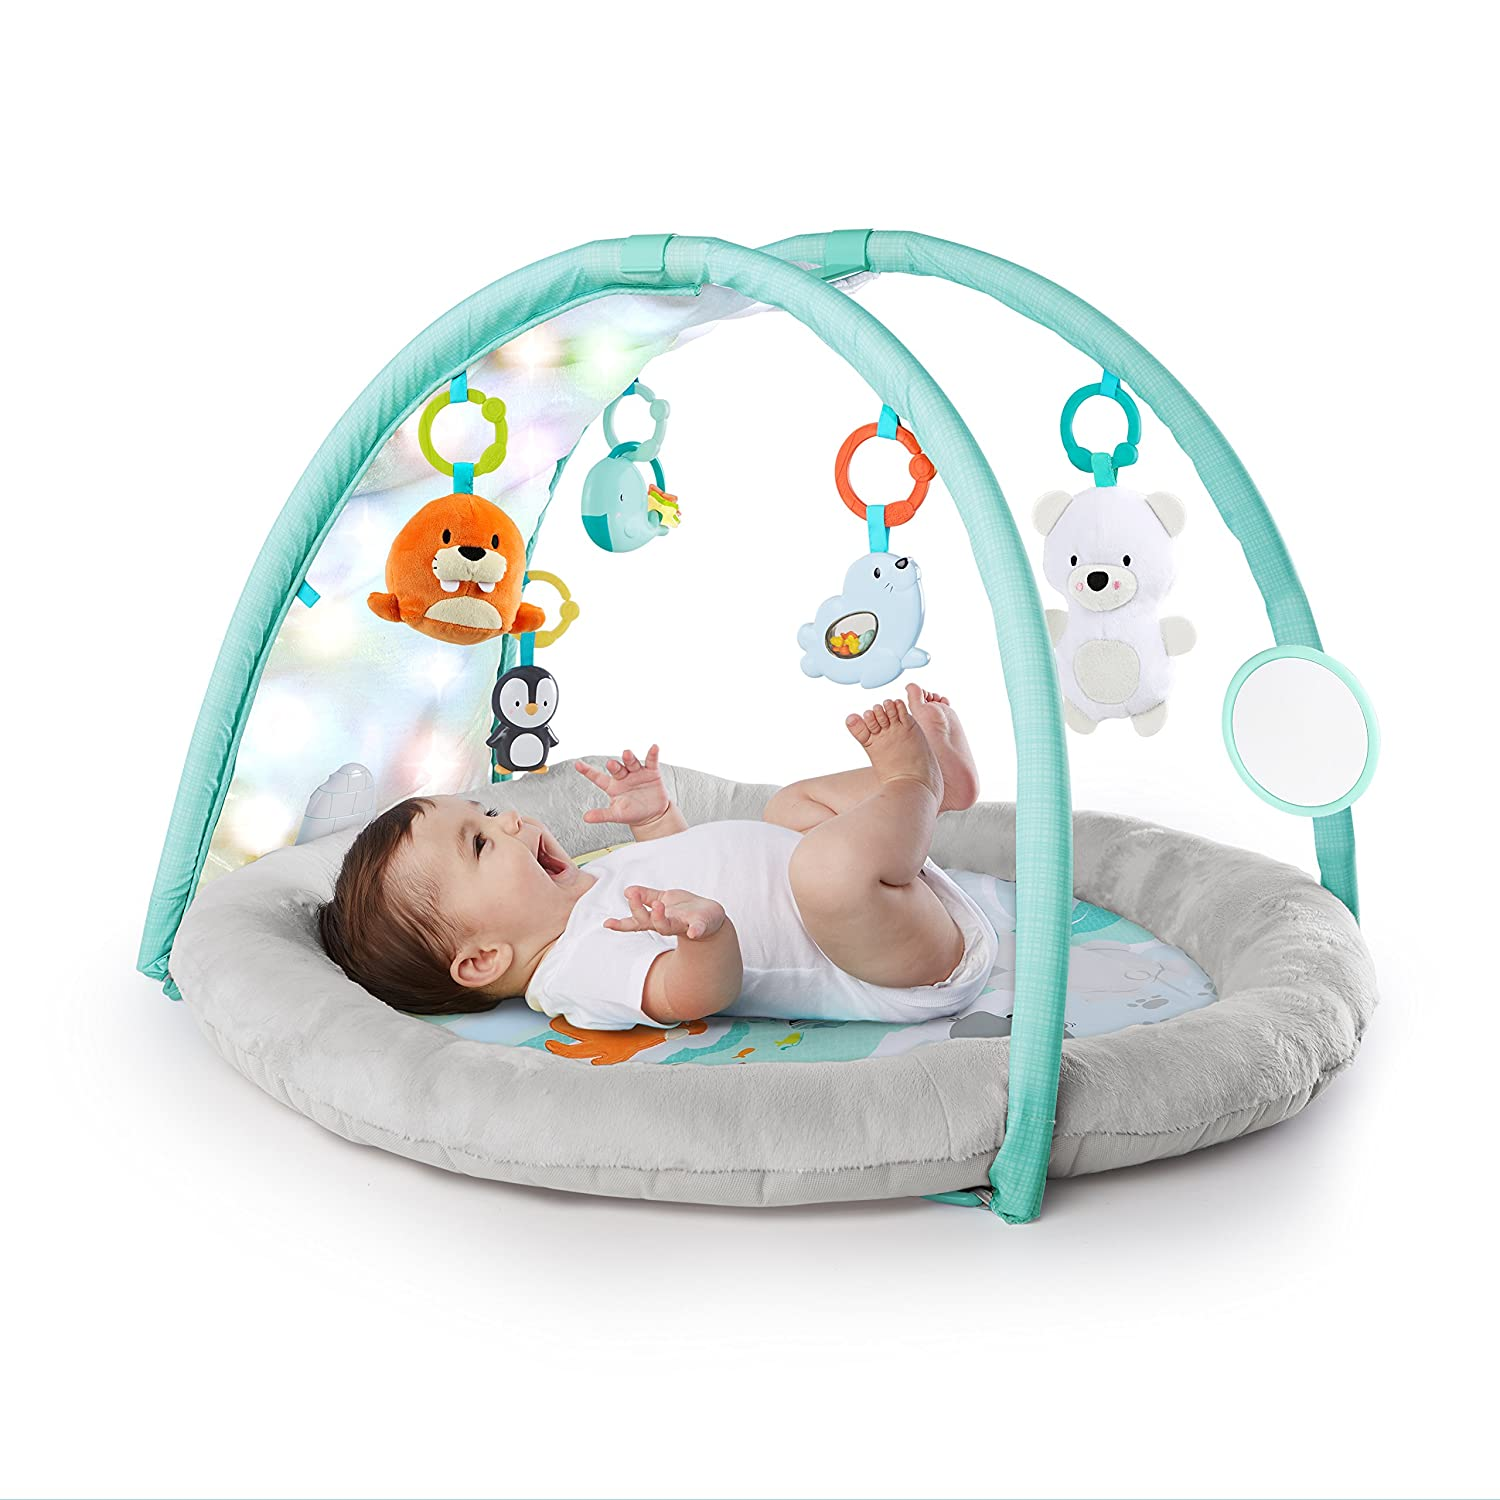 Bright Starts Arctic Glow Light Show Playmat Activity Gym with Lights and Melodies, Ages Newborn